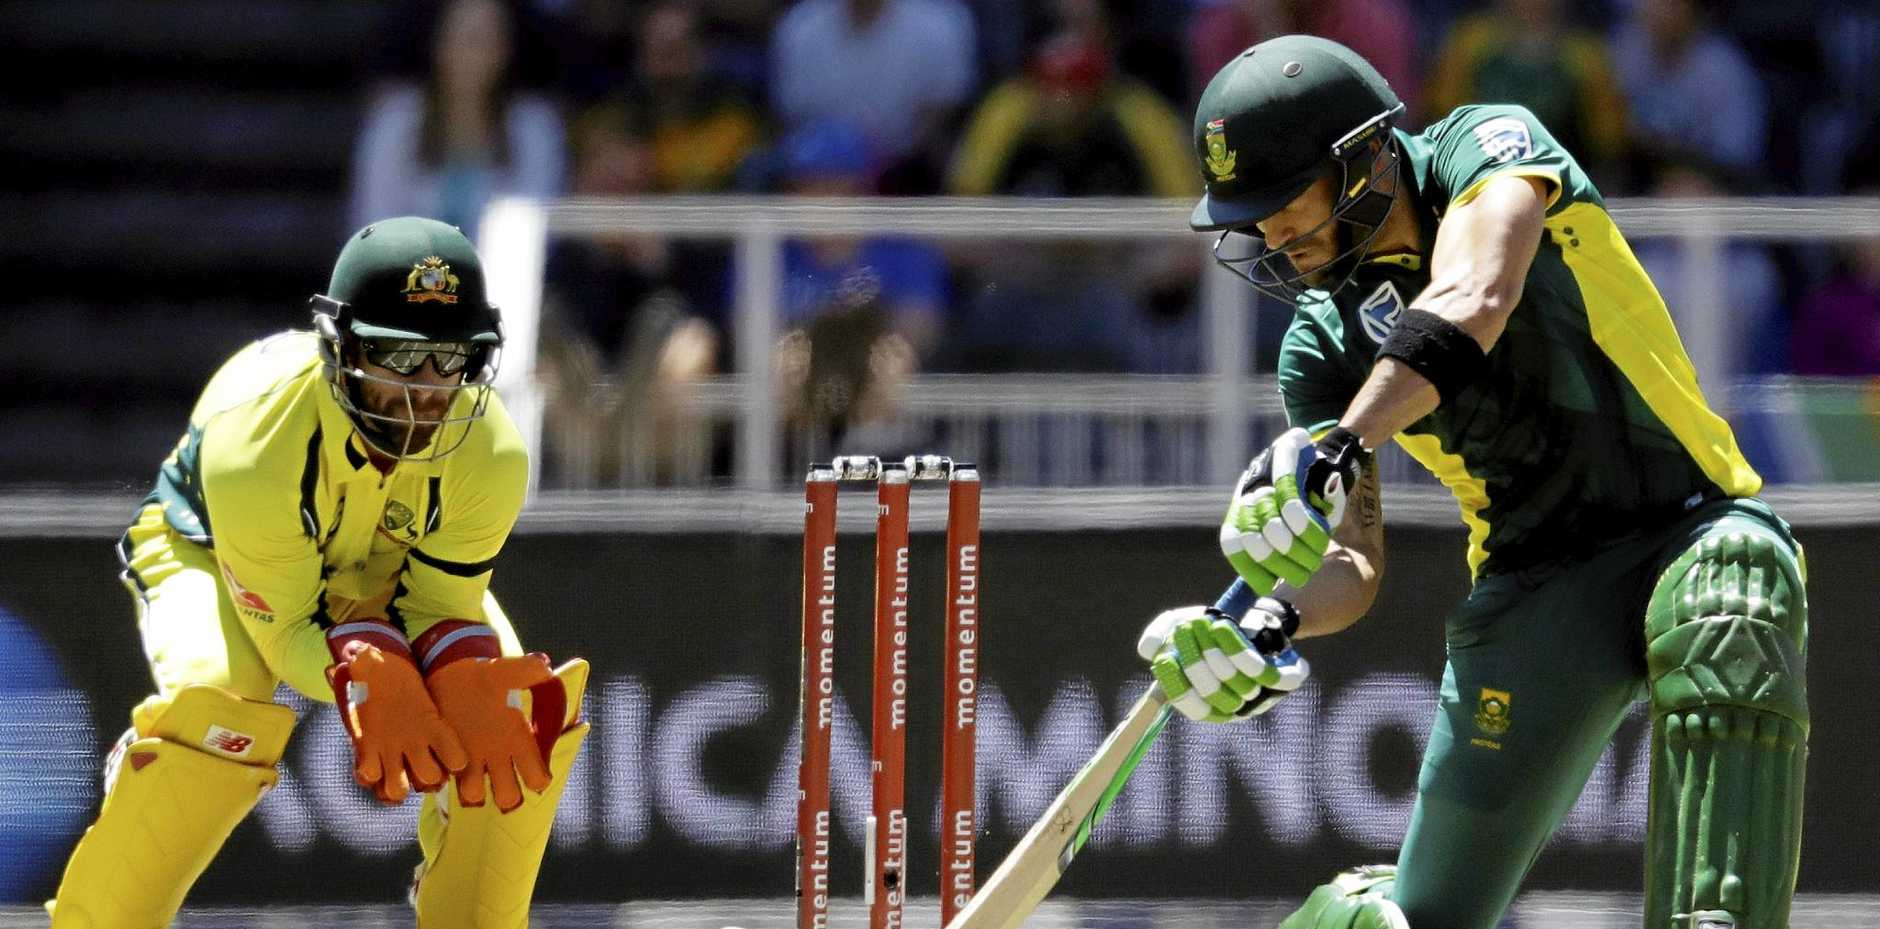 South Africa captain Faf du Plessis plays a shot during his know of 111.